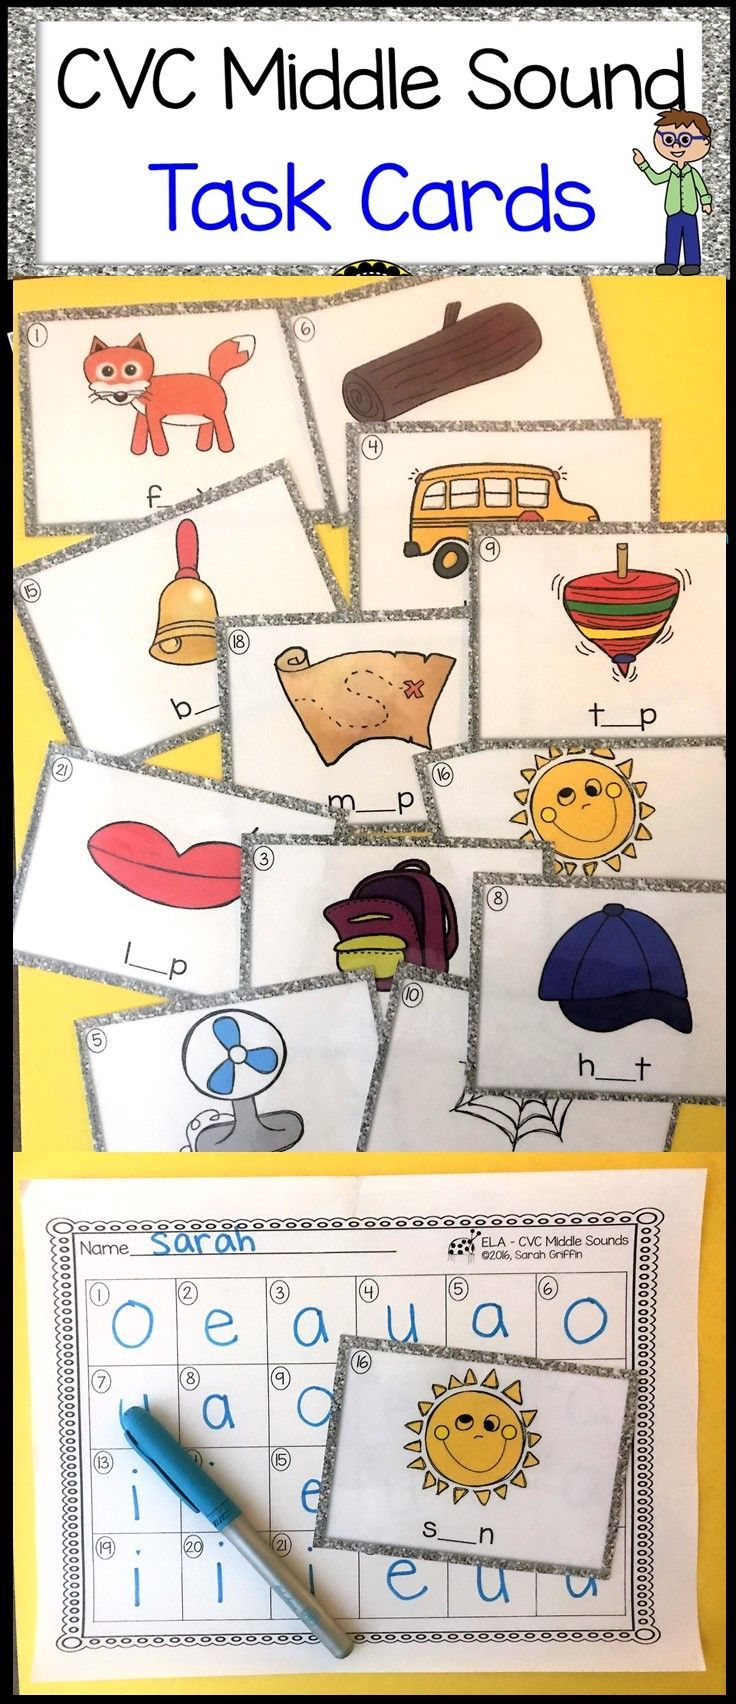 Middle Vowel Sounds Cvc Words Task Cards Ela Station Or Center Activity For Letter Sounds Scoot Read And First Grade Phonics Task Cards Middle Sounds [ 1704 x 736 Pixel ]